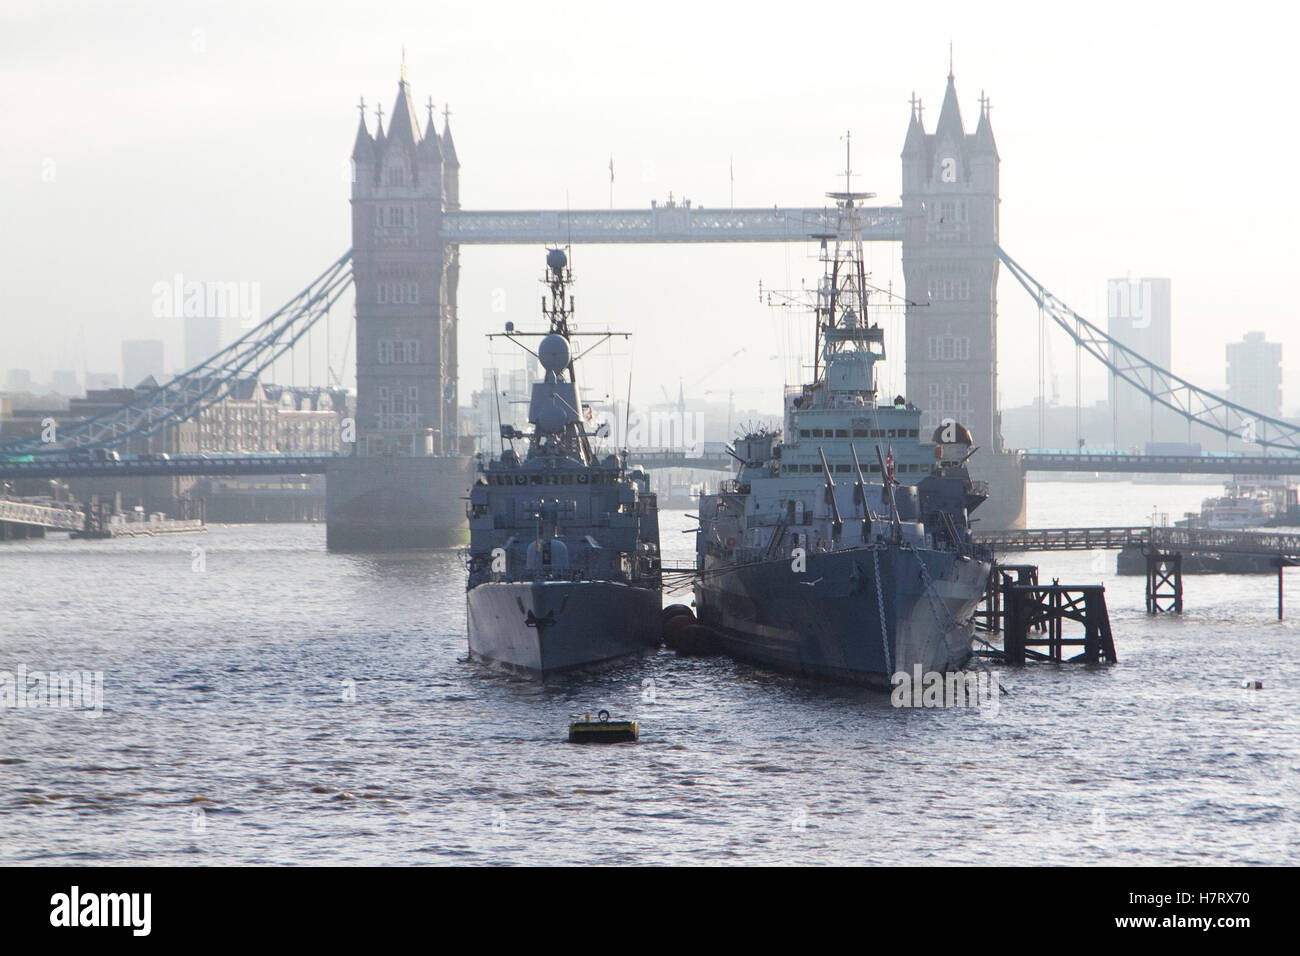 London,UK. 8th November 2016. A German navy frigate anchored next to HMS Belfast on cold morning Credit:  amer ghazzal/Alamy Stock Photo